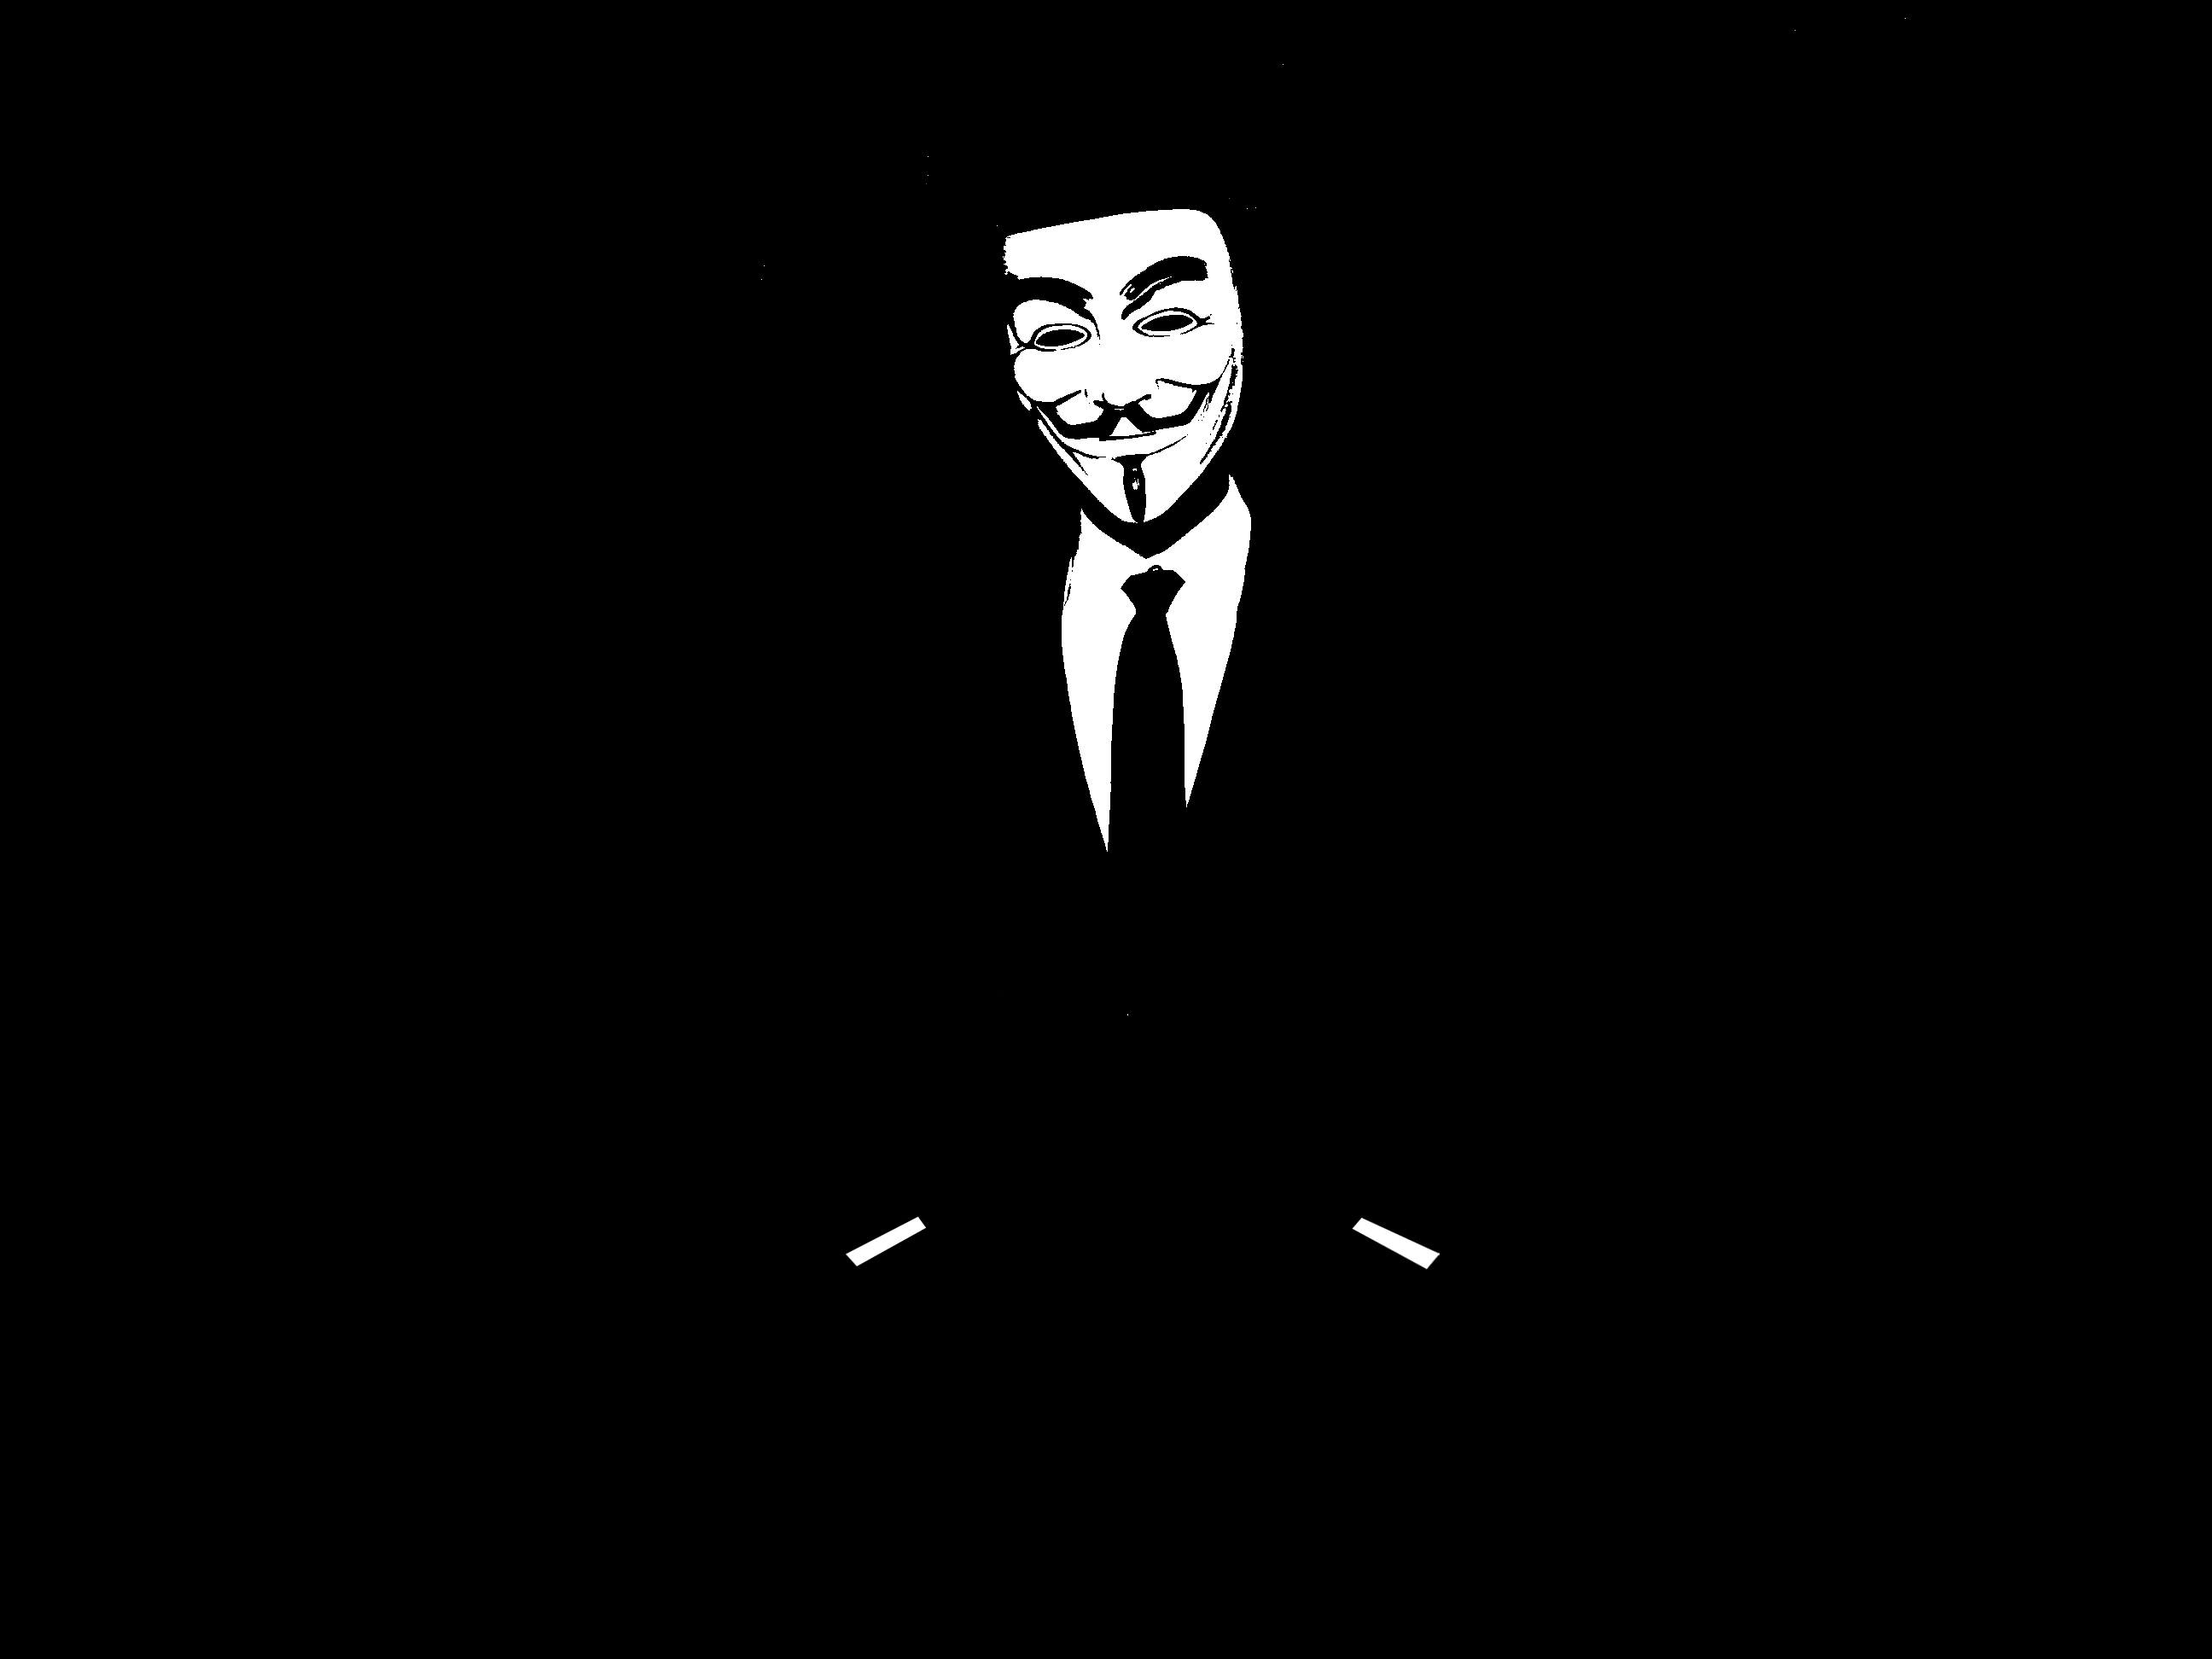 Anonymous Wallpaper 2592x1944 Anonymous 2592x1944